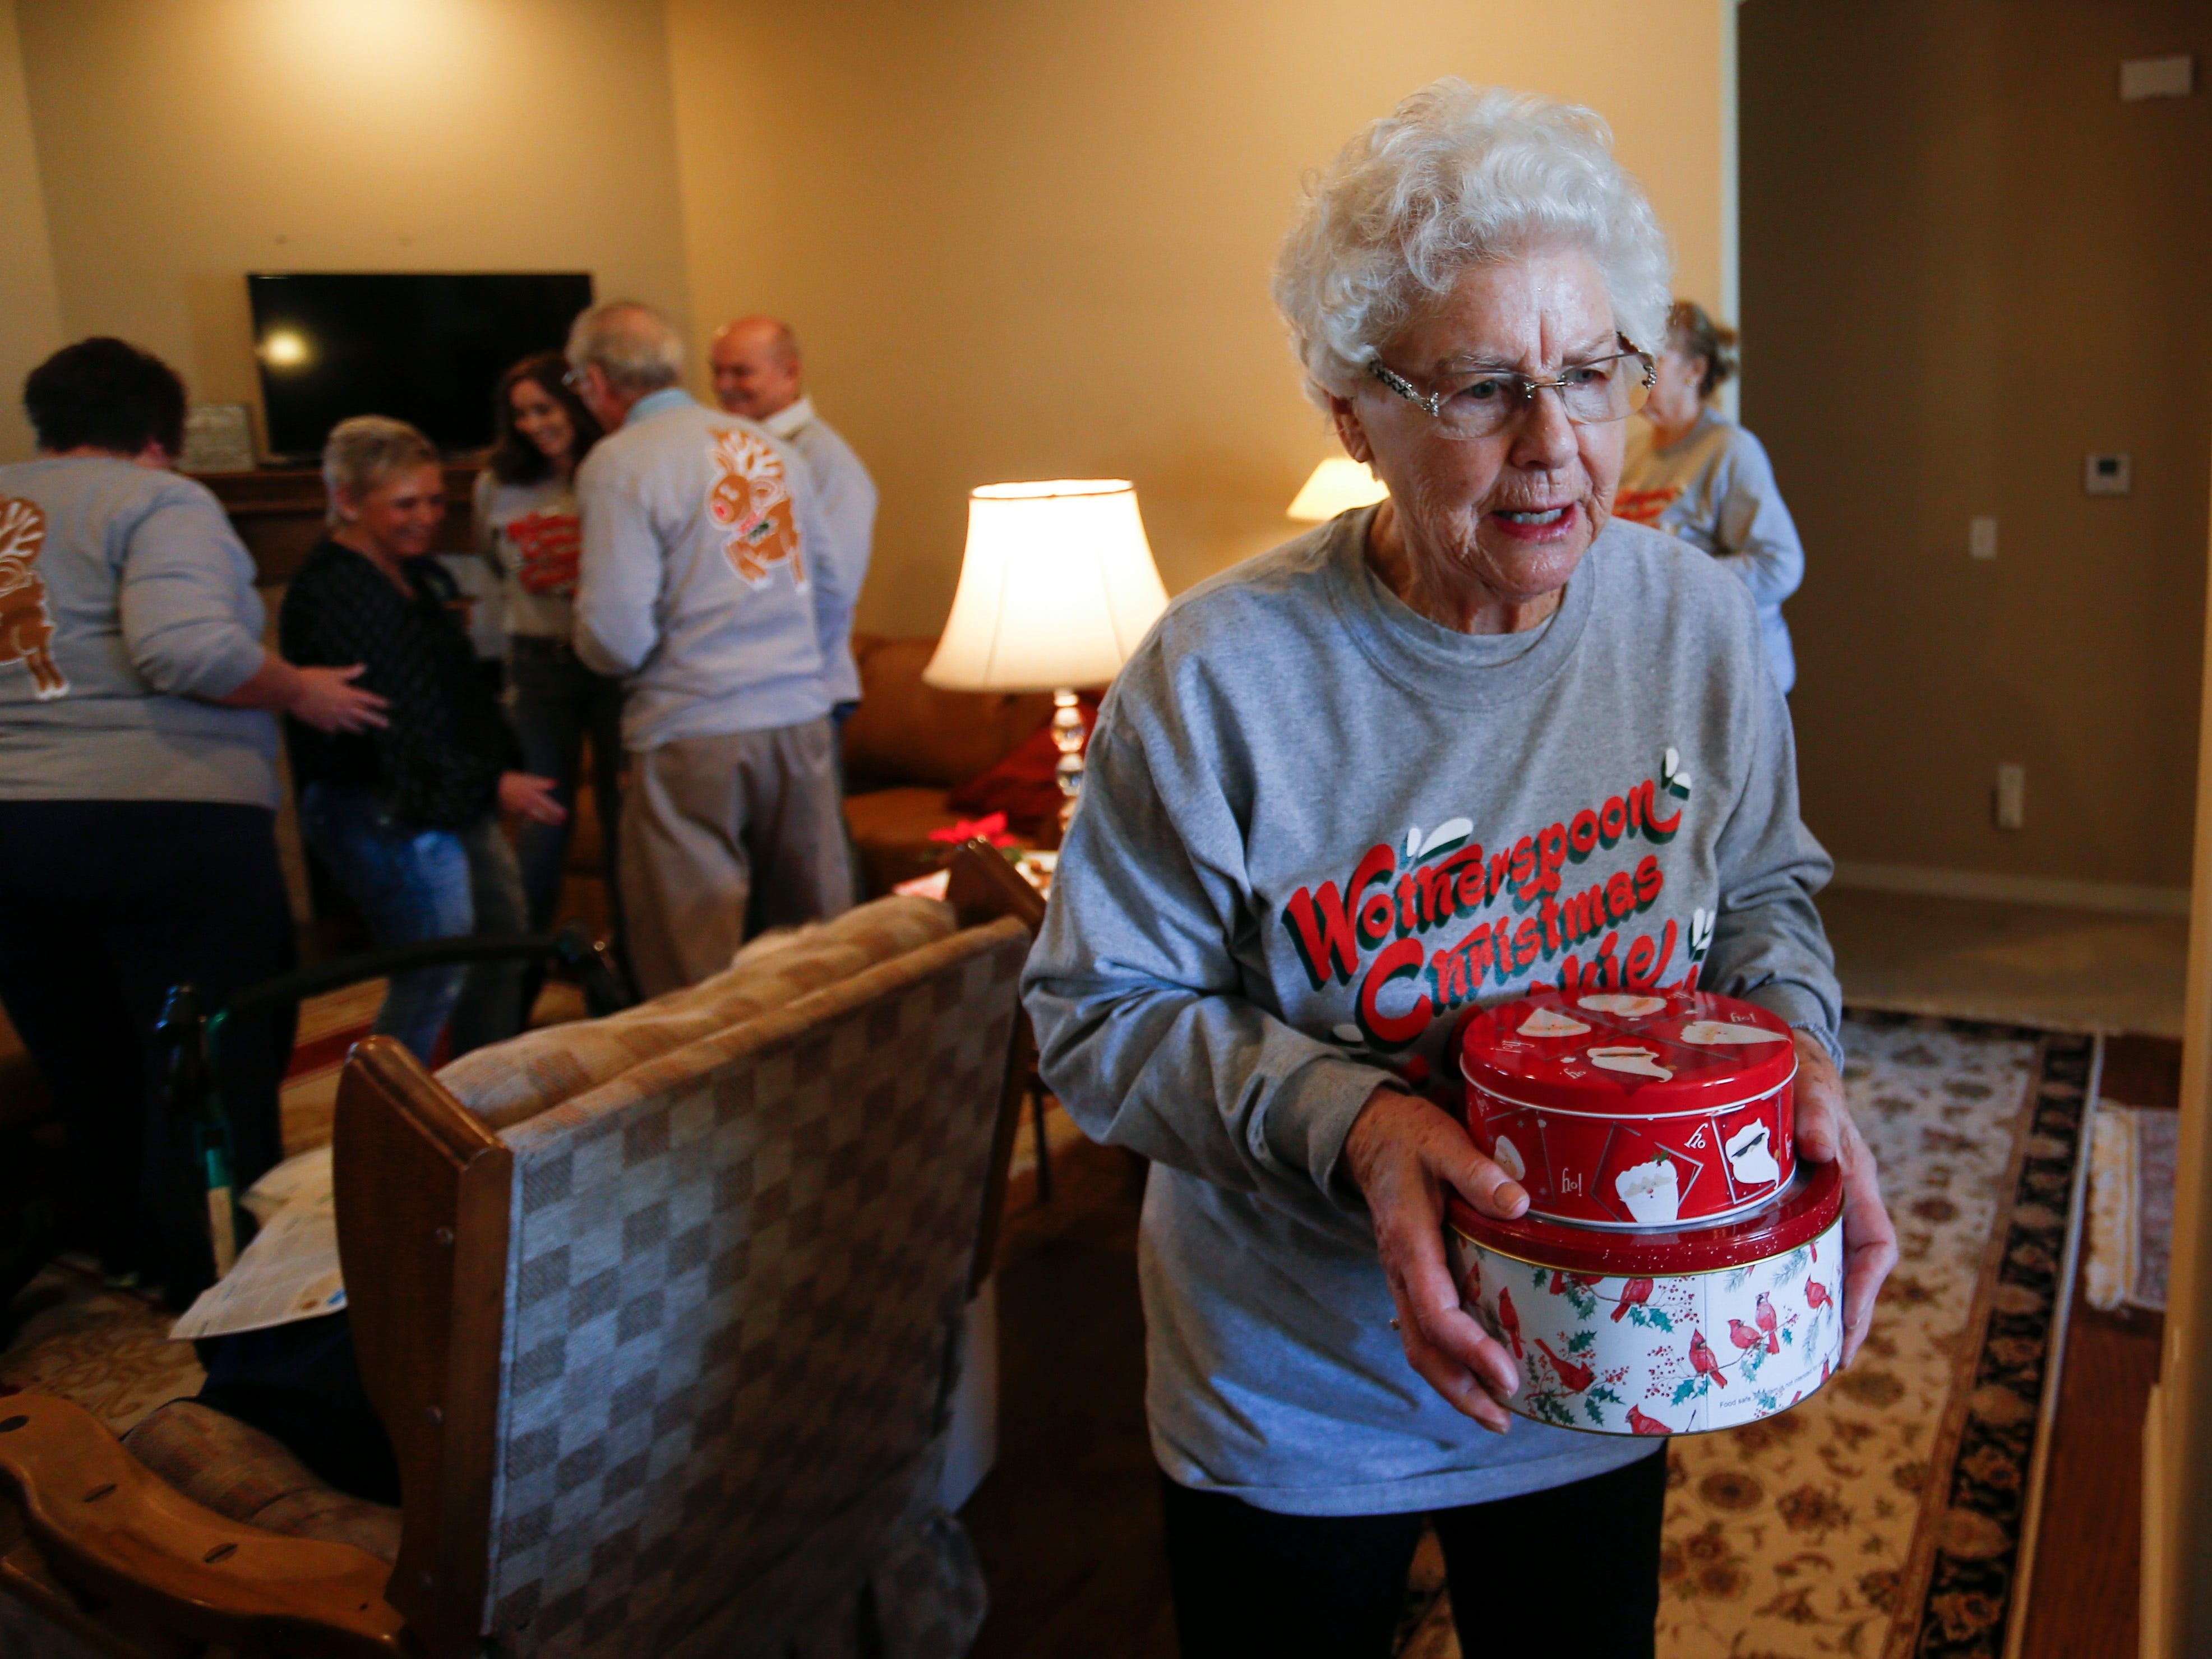 Jeanette Wotherspoon, 84, carries tins of cookies for guests at the Wotherspoon Christmas cookie extravaganza on Saturday, Dec. 15, 2018.